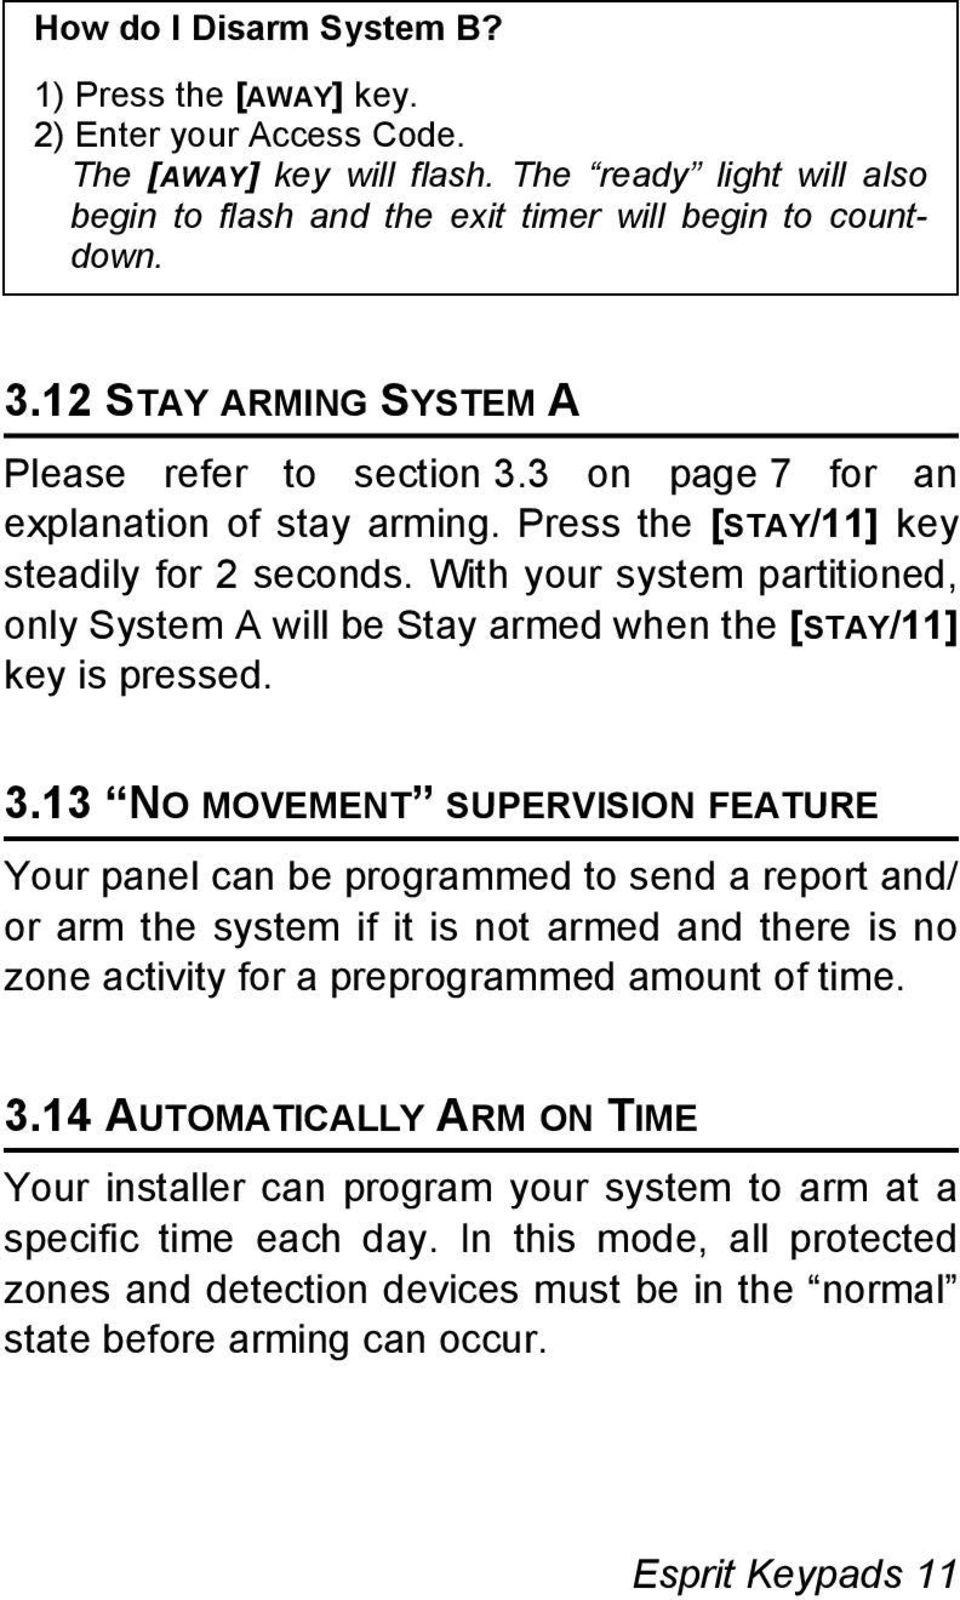 With your system partitioned, only System A will be Stay armed when the [STAY/11] key is pressed. 3.